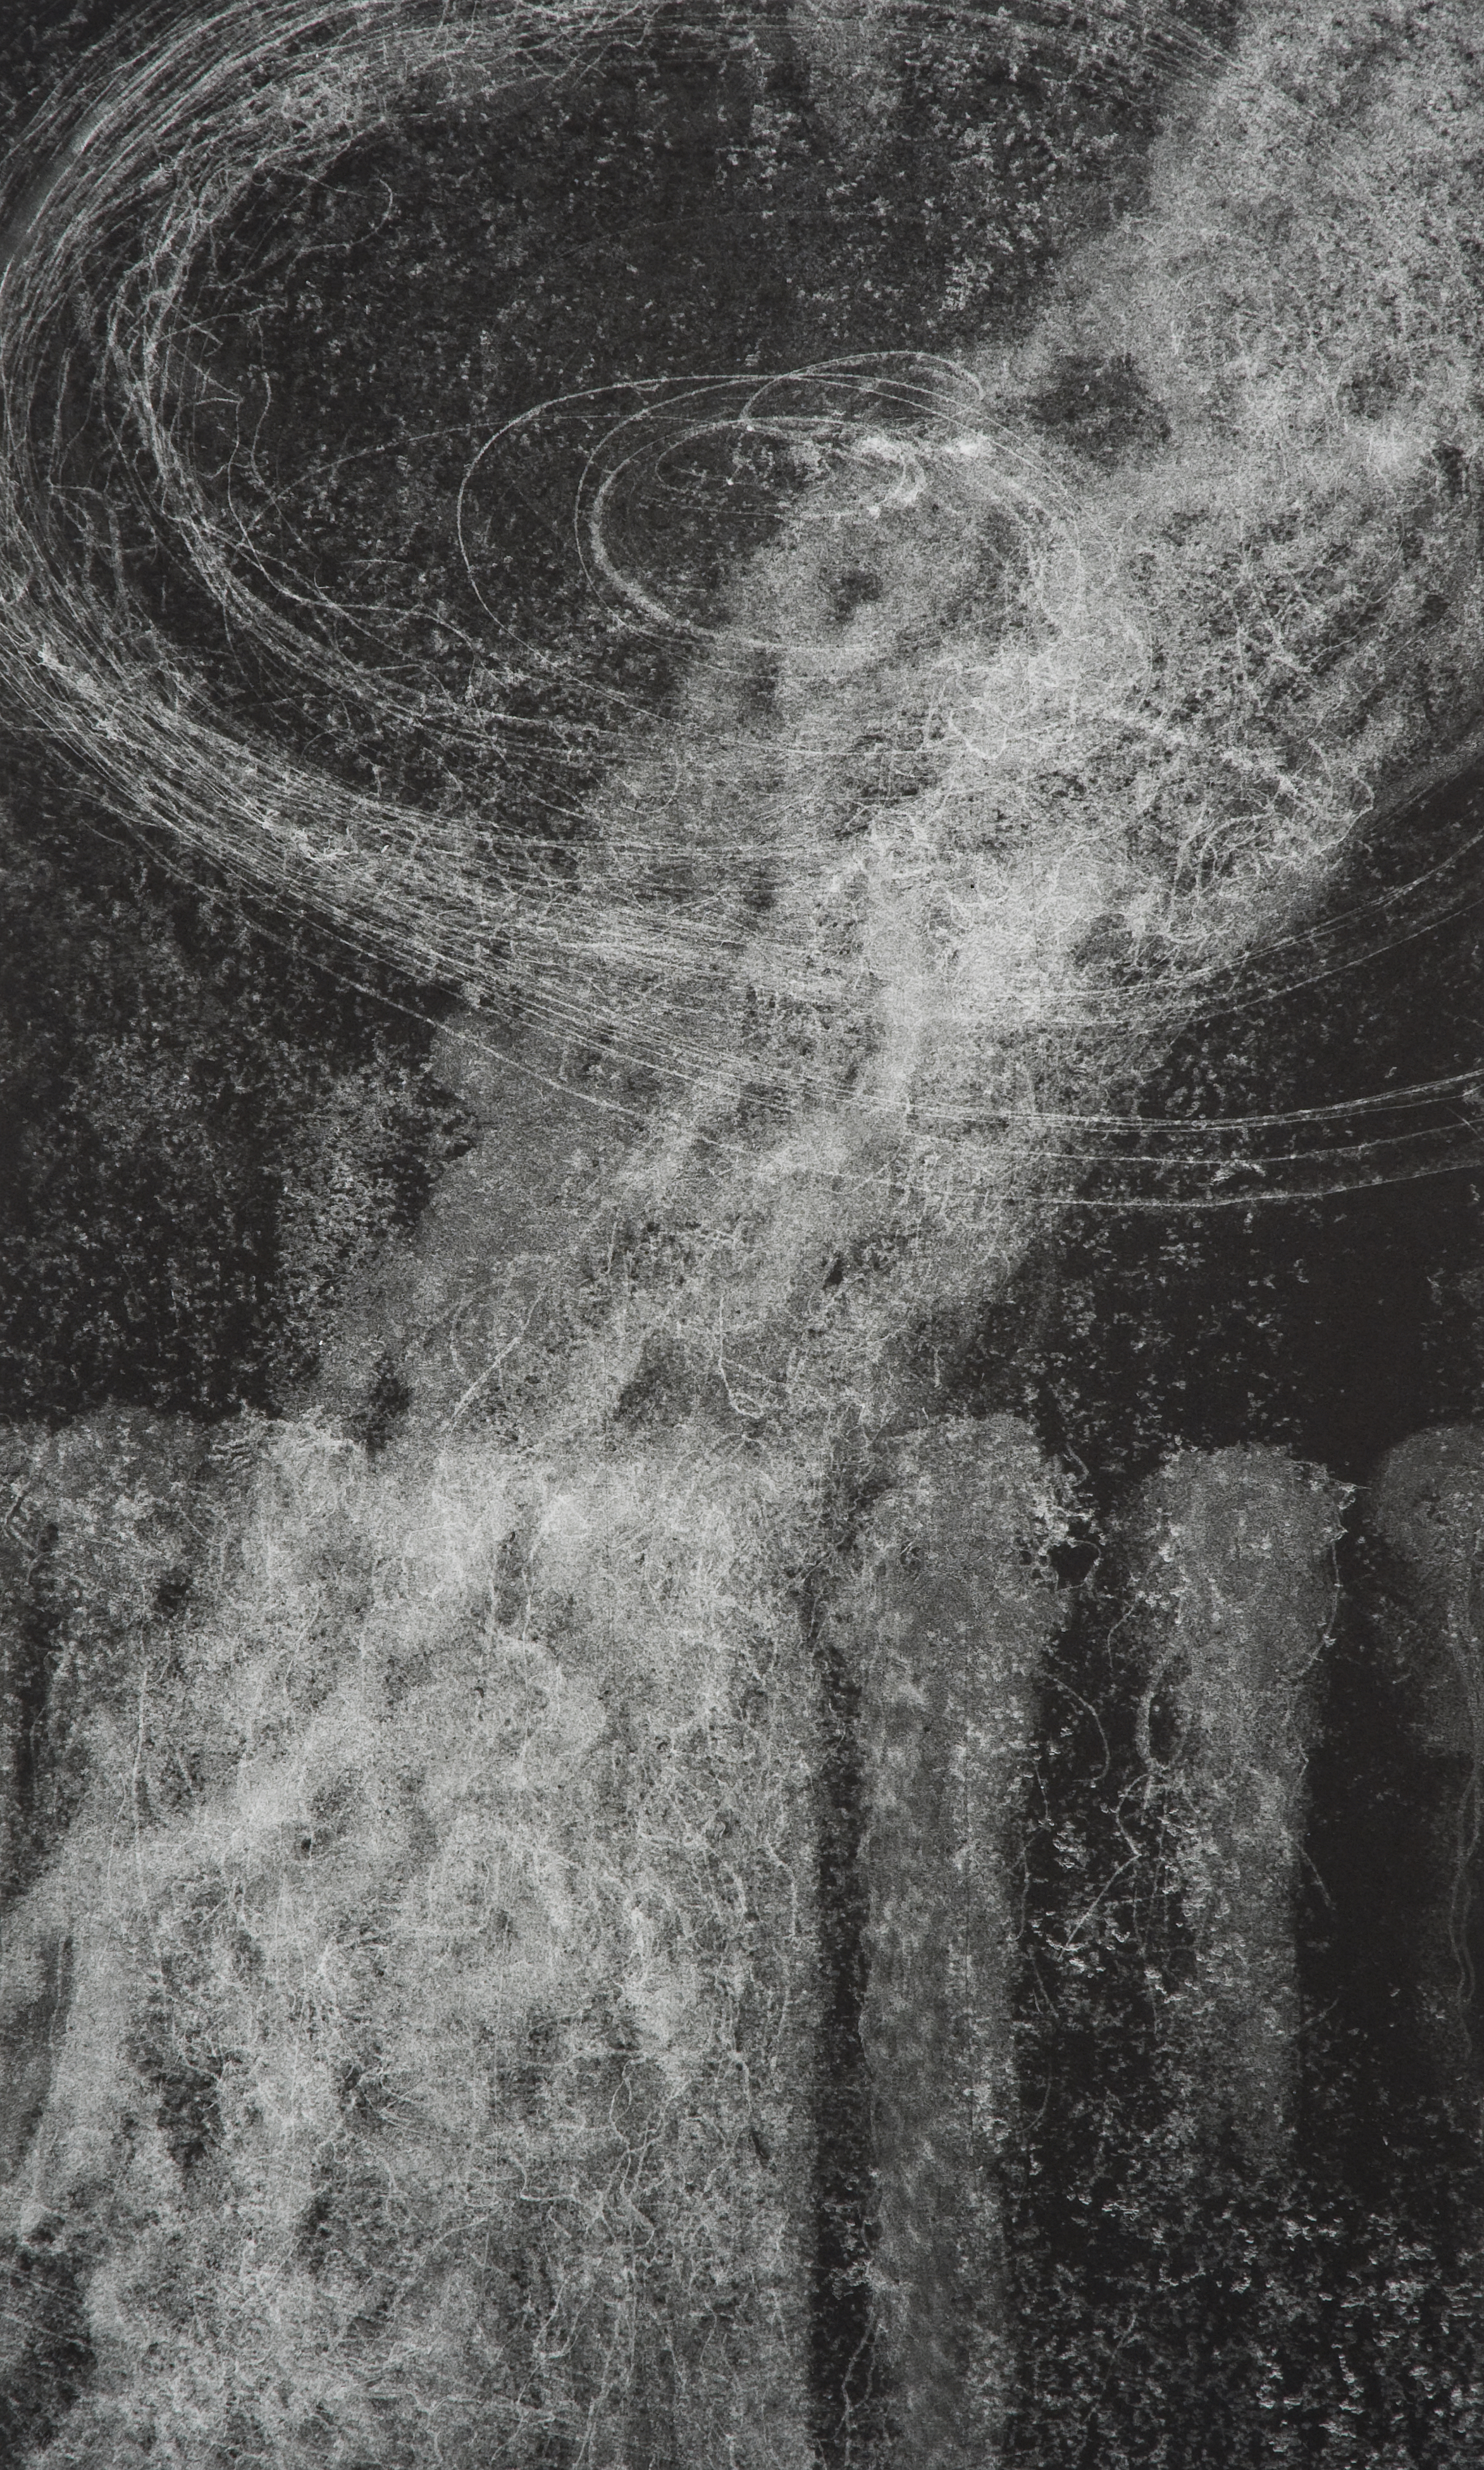 Hilda Shen, Illumined Triptych (right), 2010. Set of 3 unique monotypes, 15 x 25 inches, ©Hilda Shen, courtesy of Fou Gallery